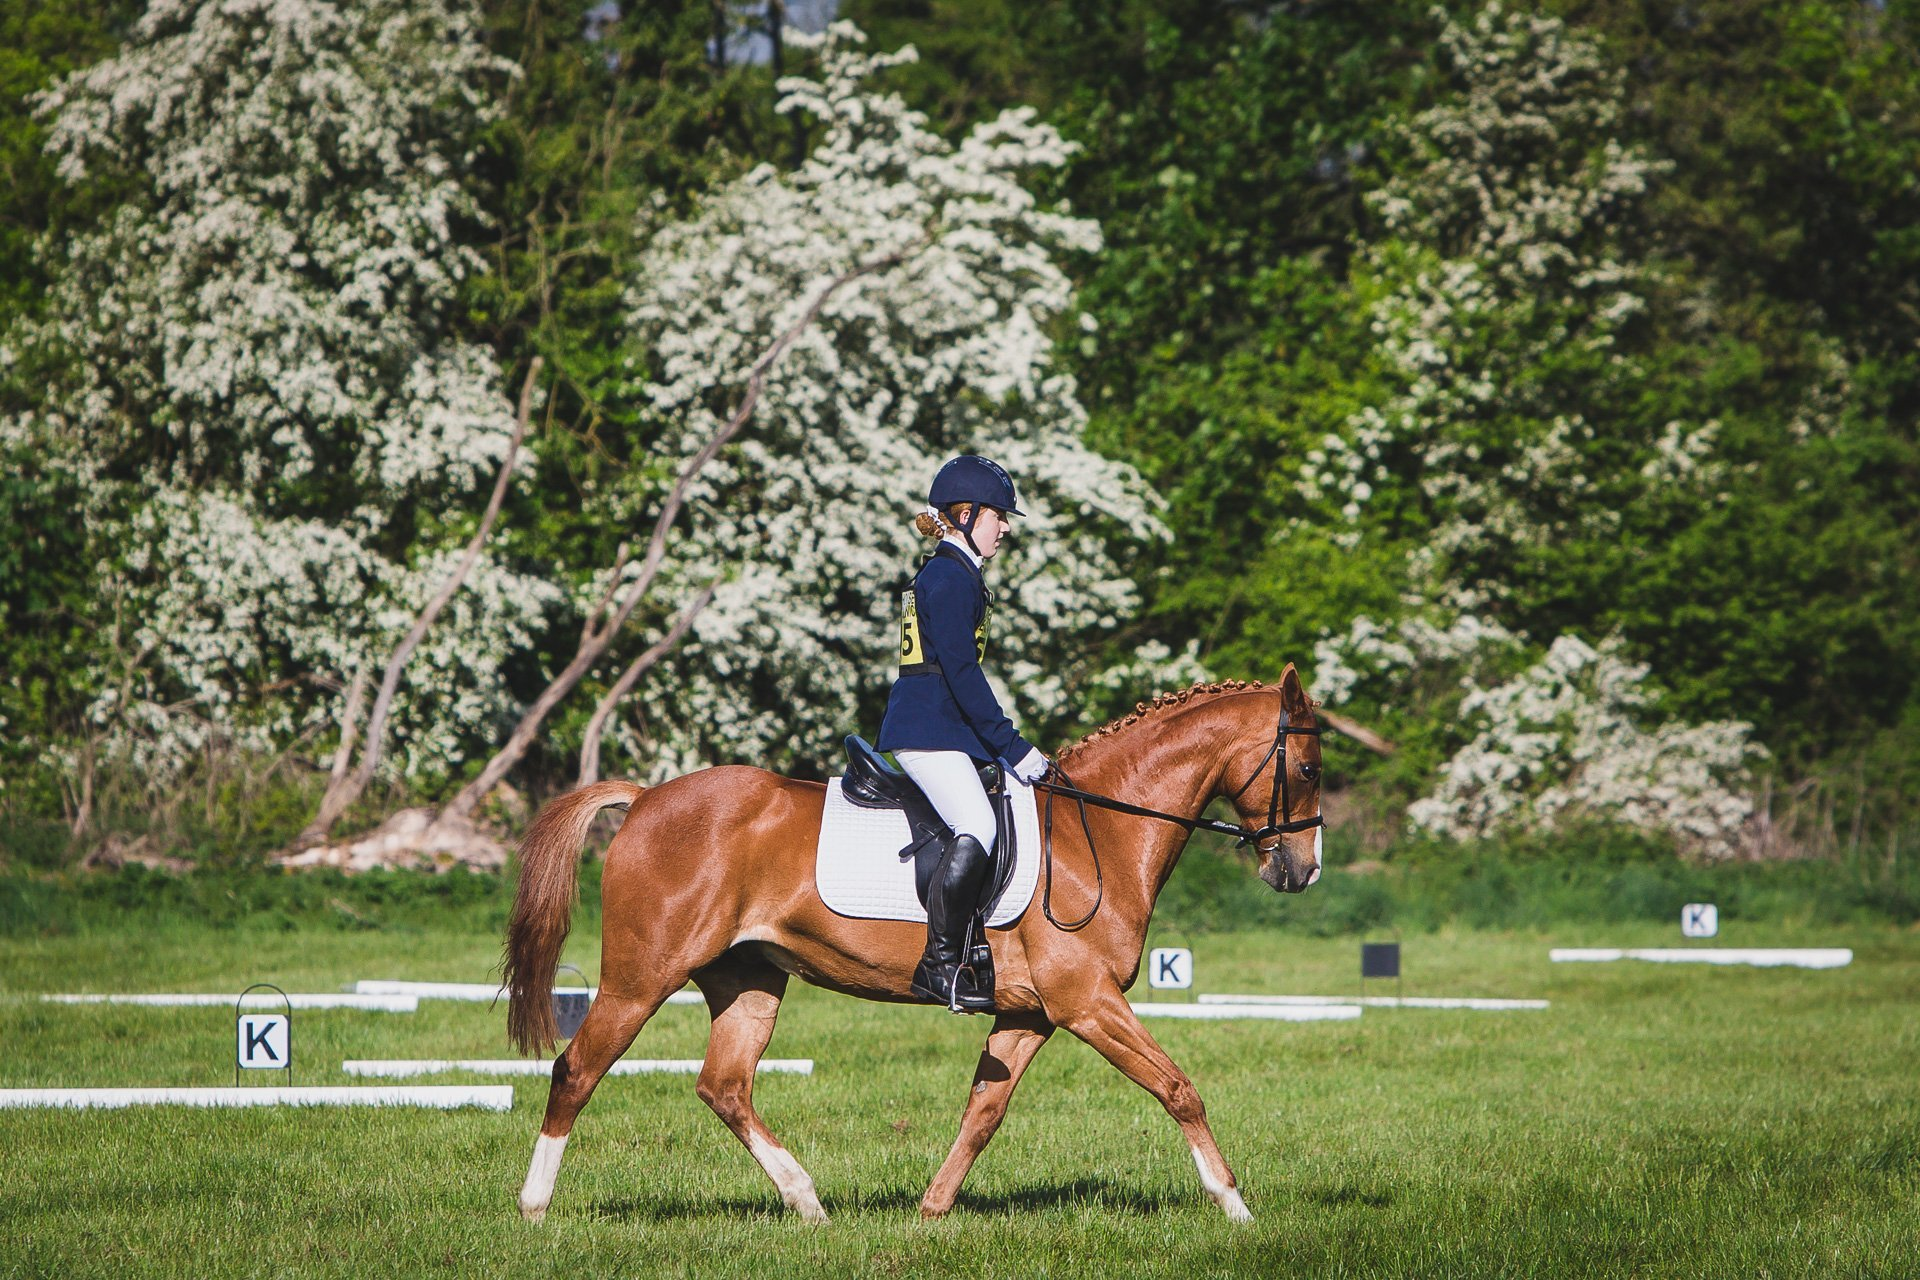 Llanymynech horse trials dressage